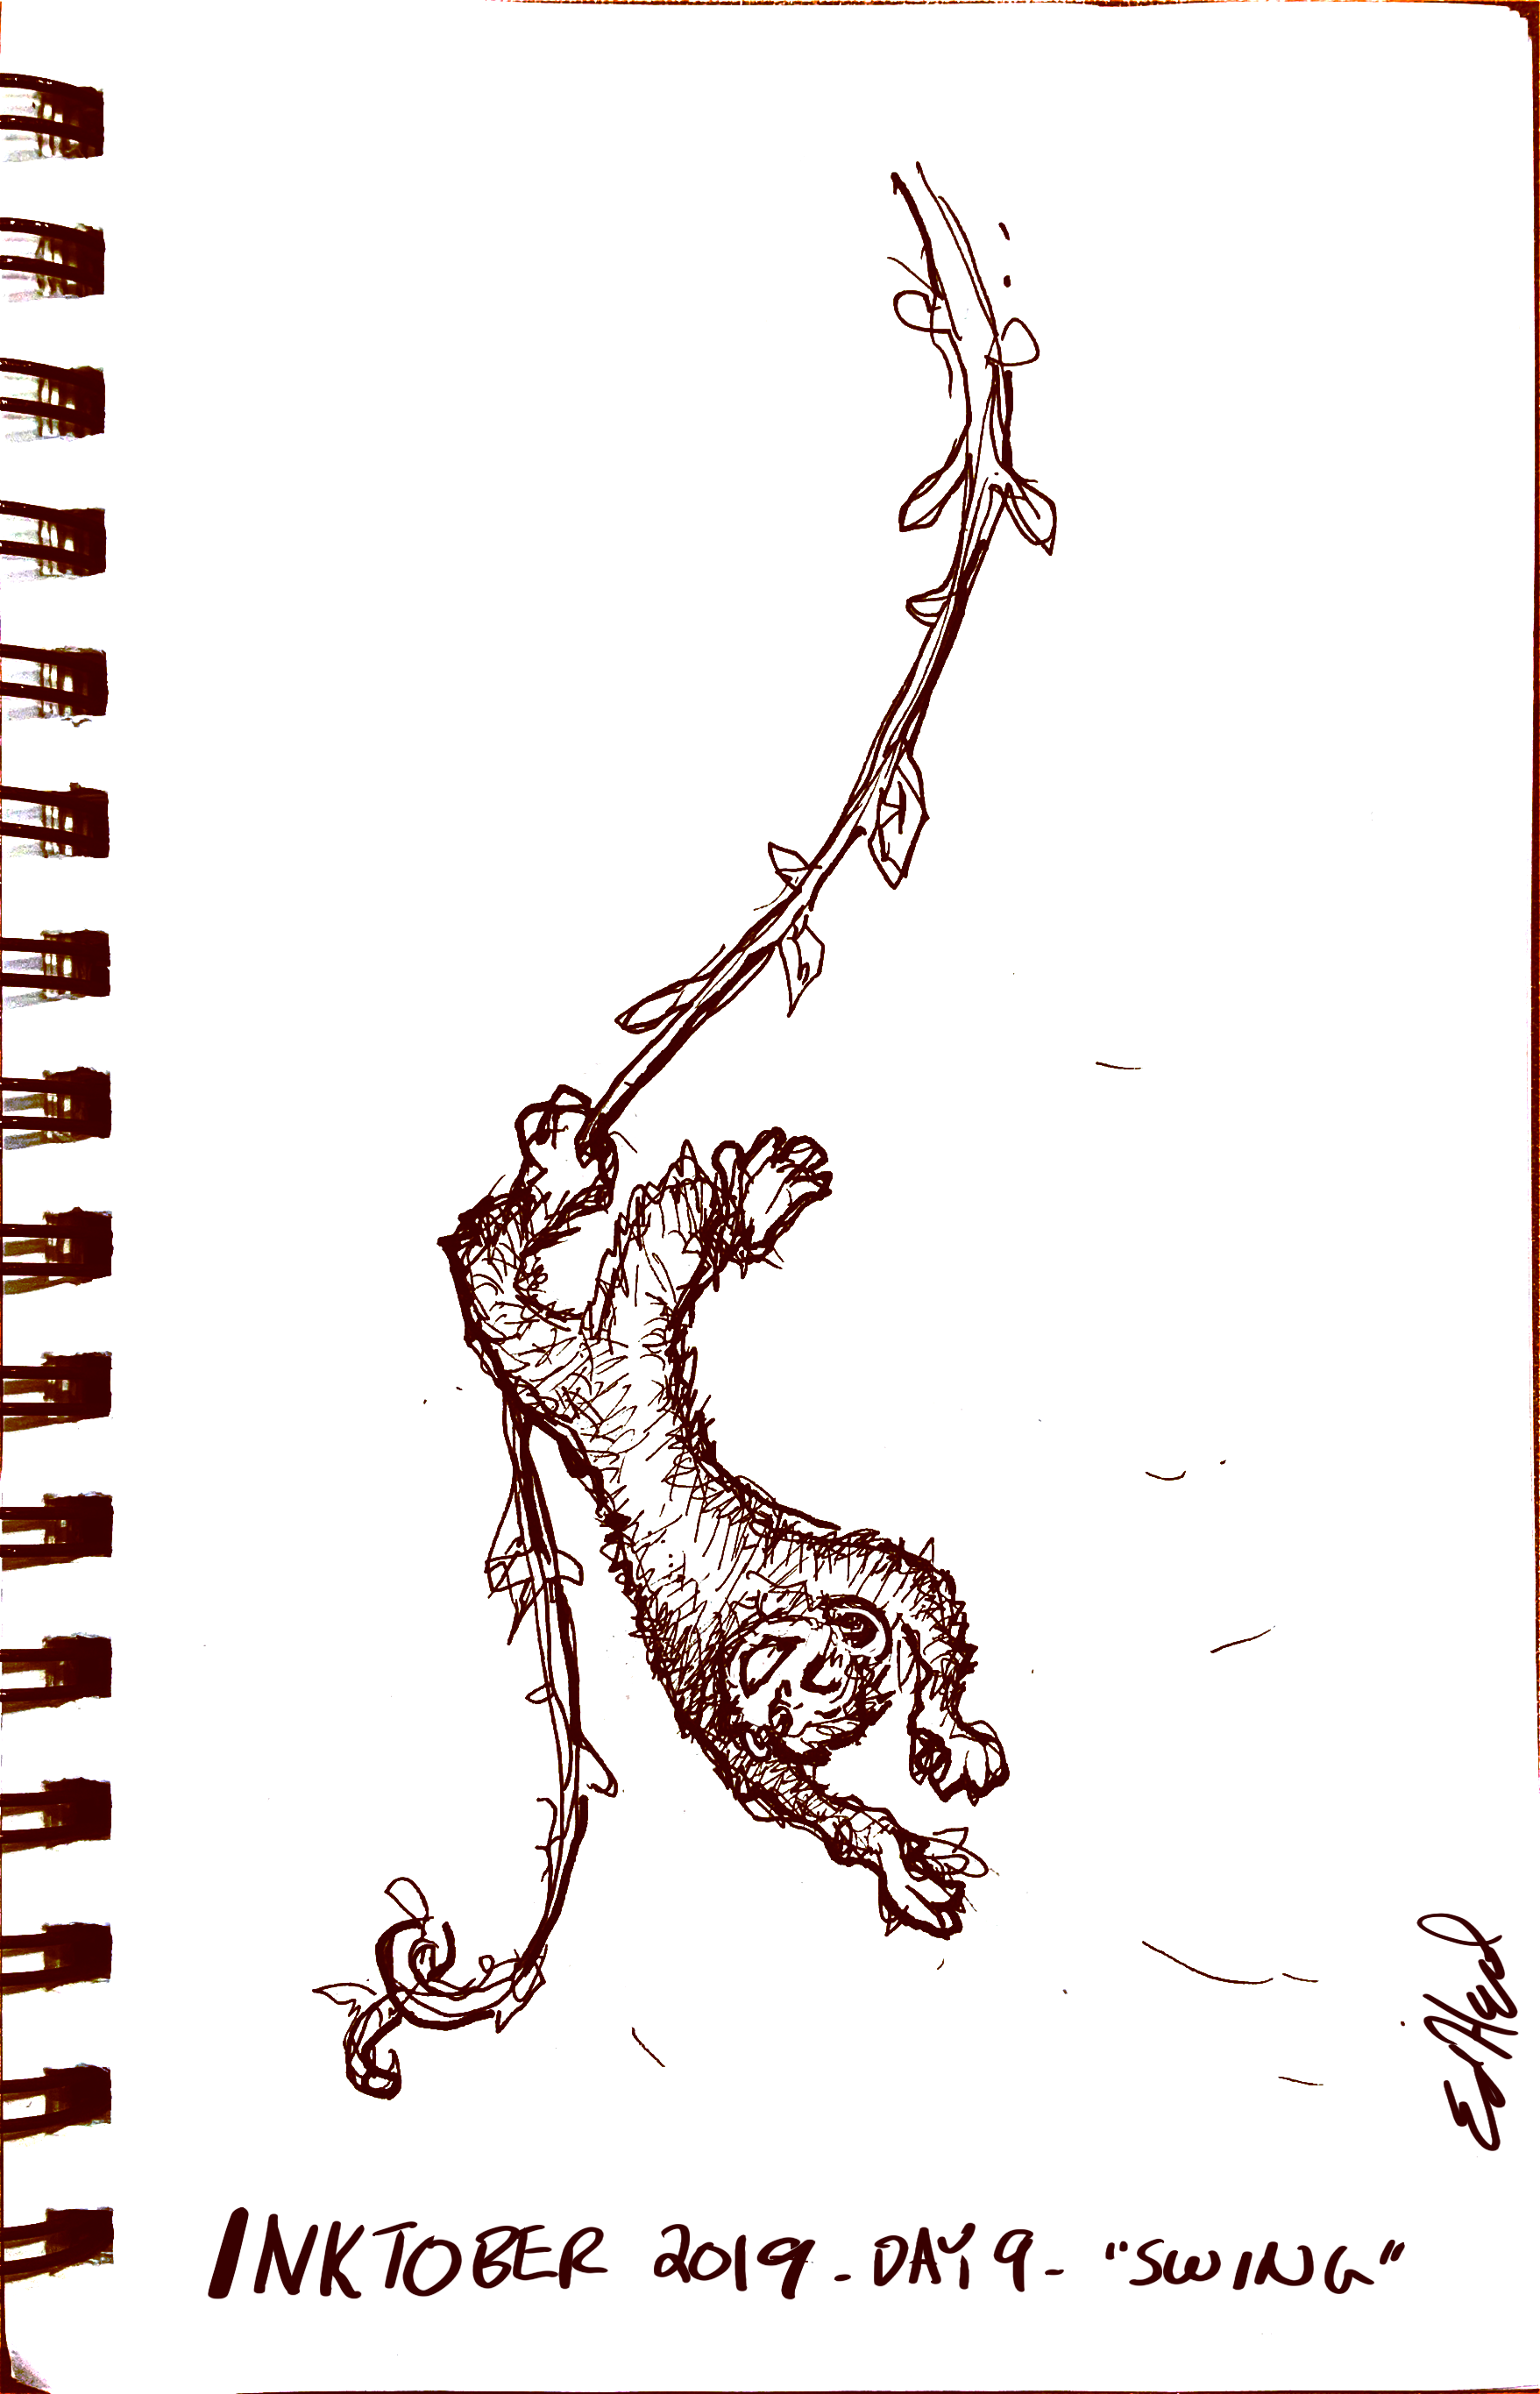 A happy monkey swinging upside down on a vine